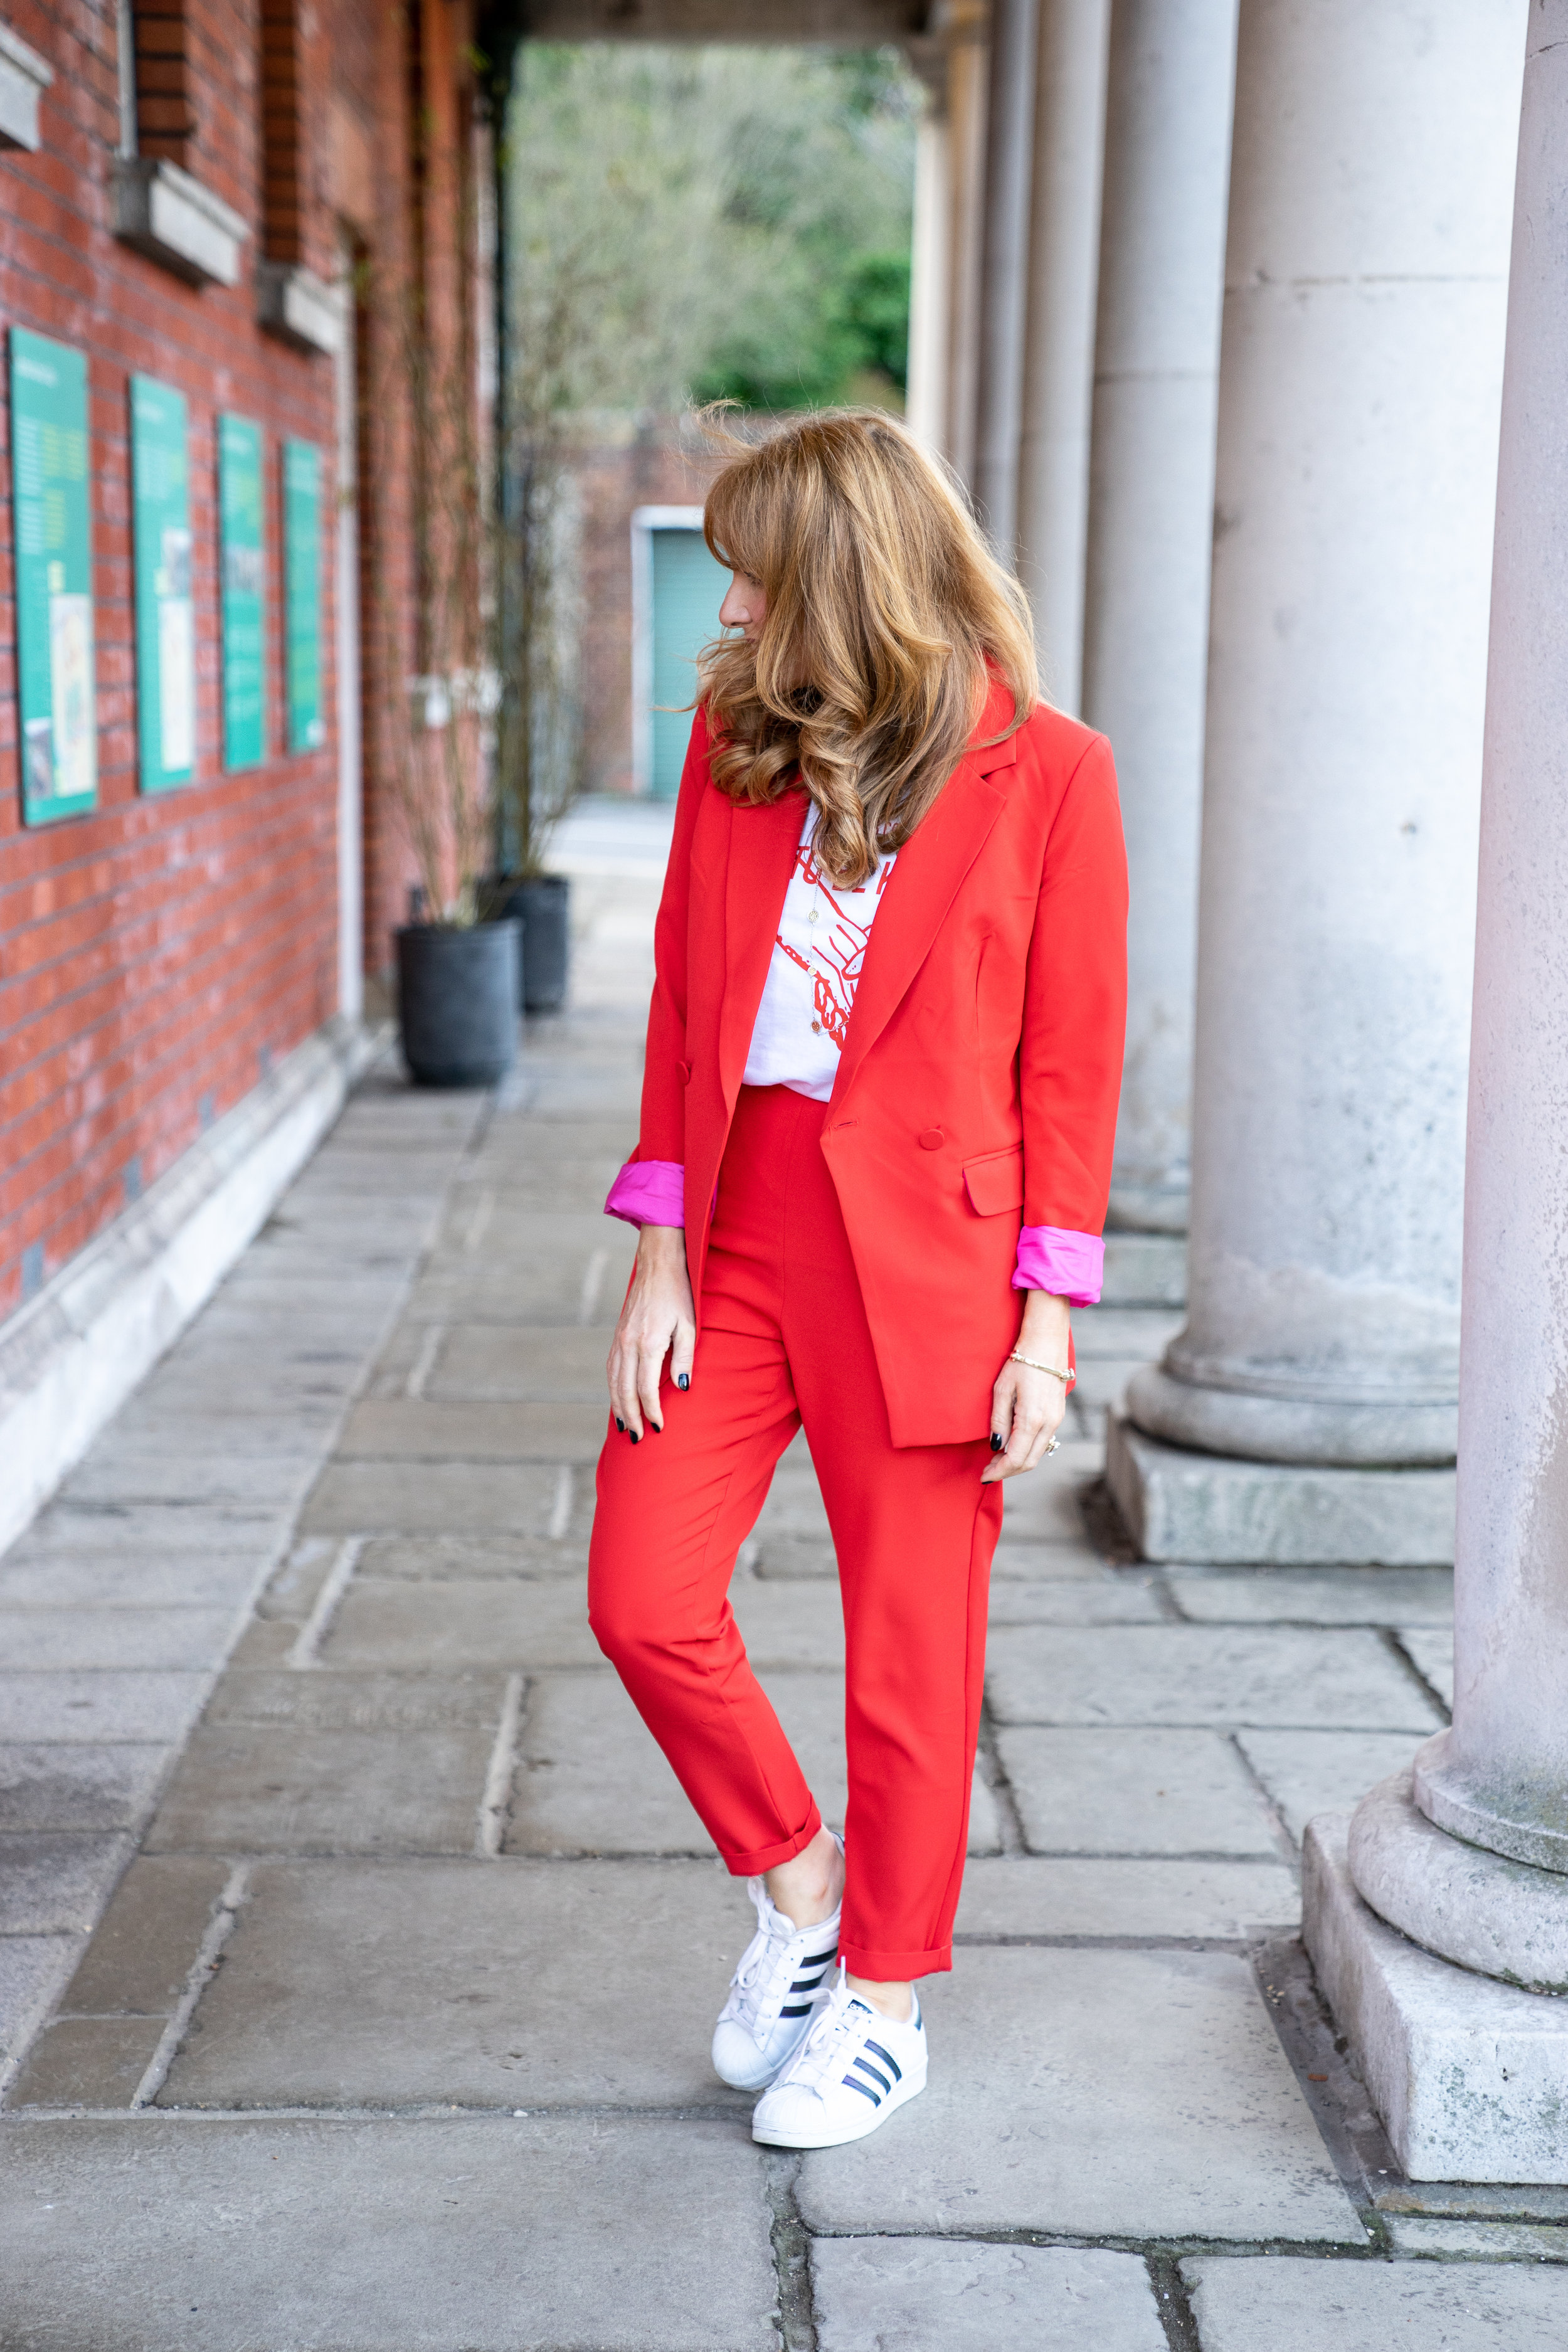 The Style Bible - The Red Suit